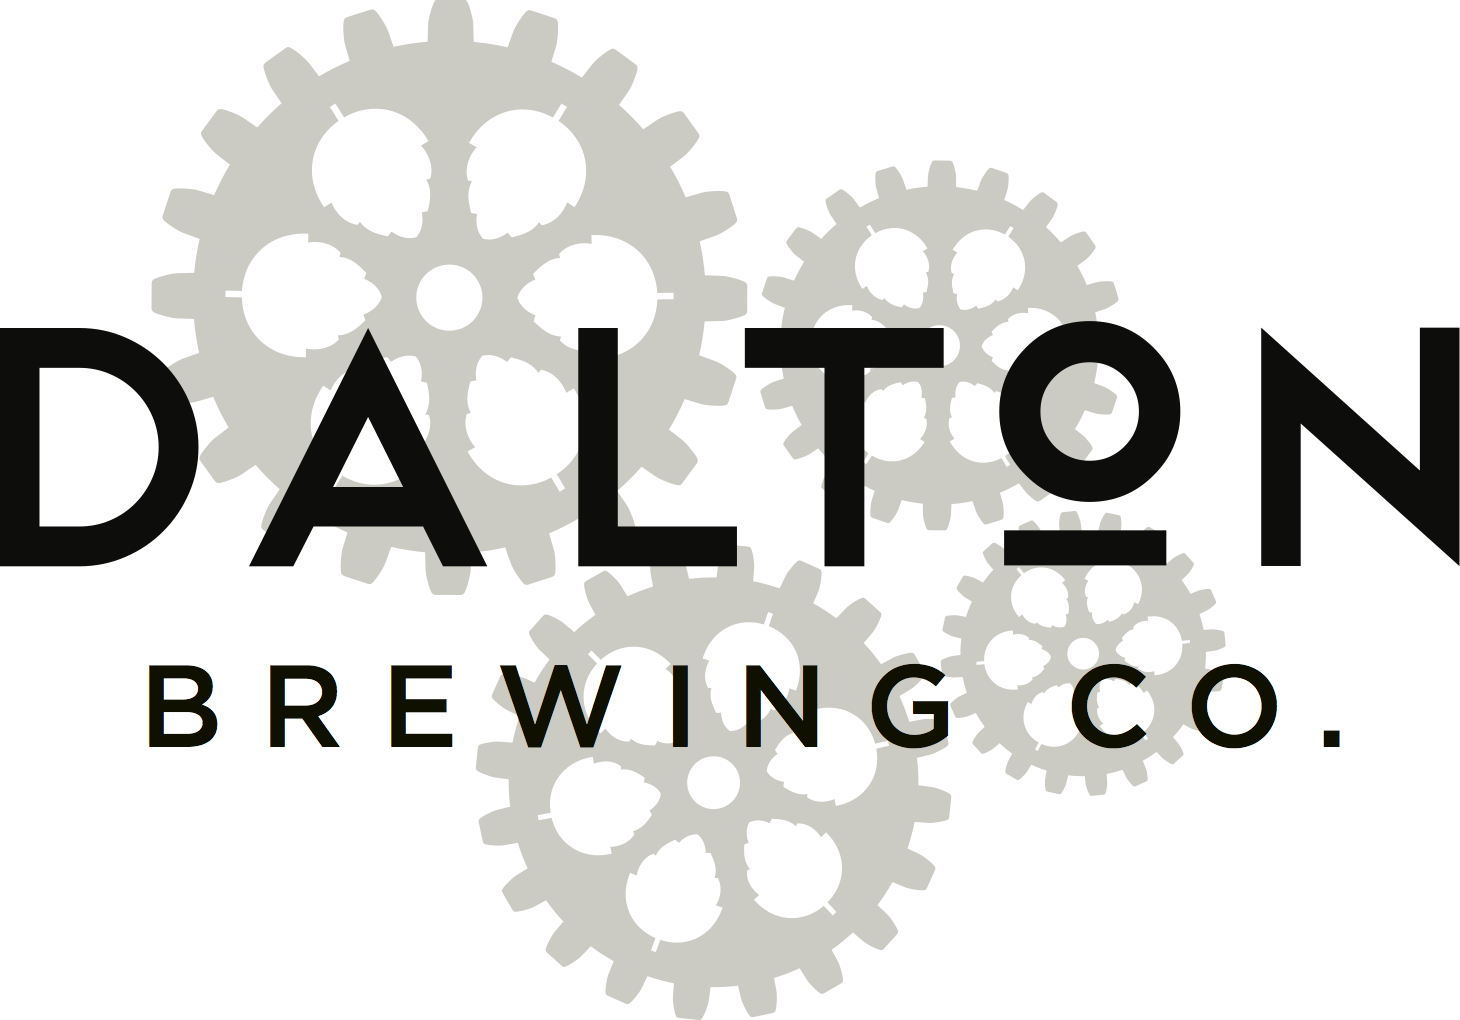 Dalton Brewing Co.